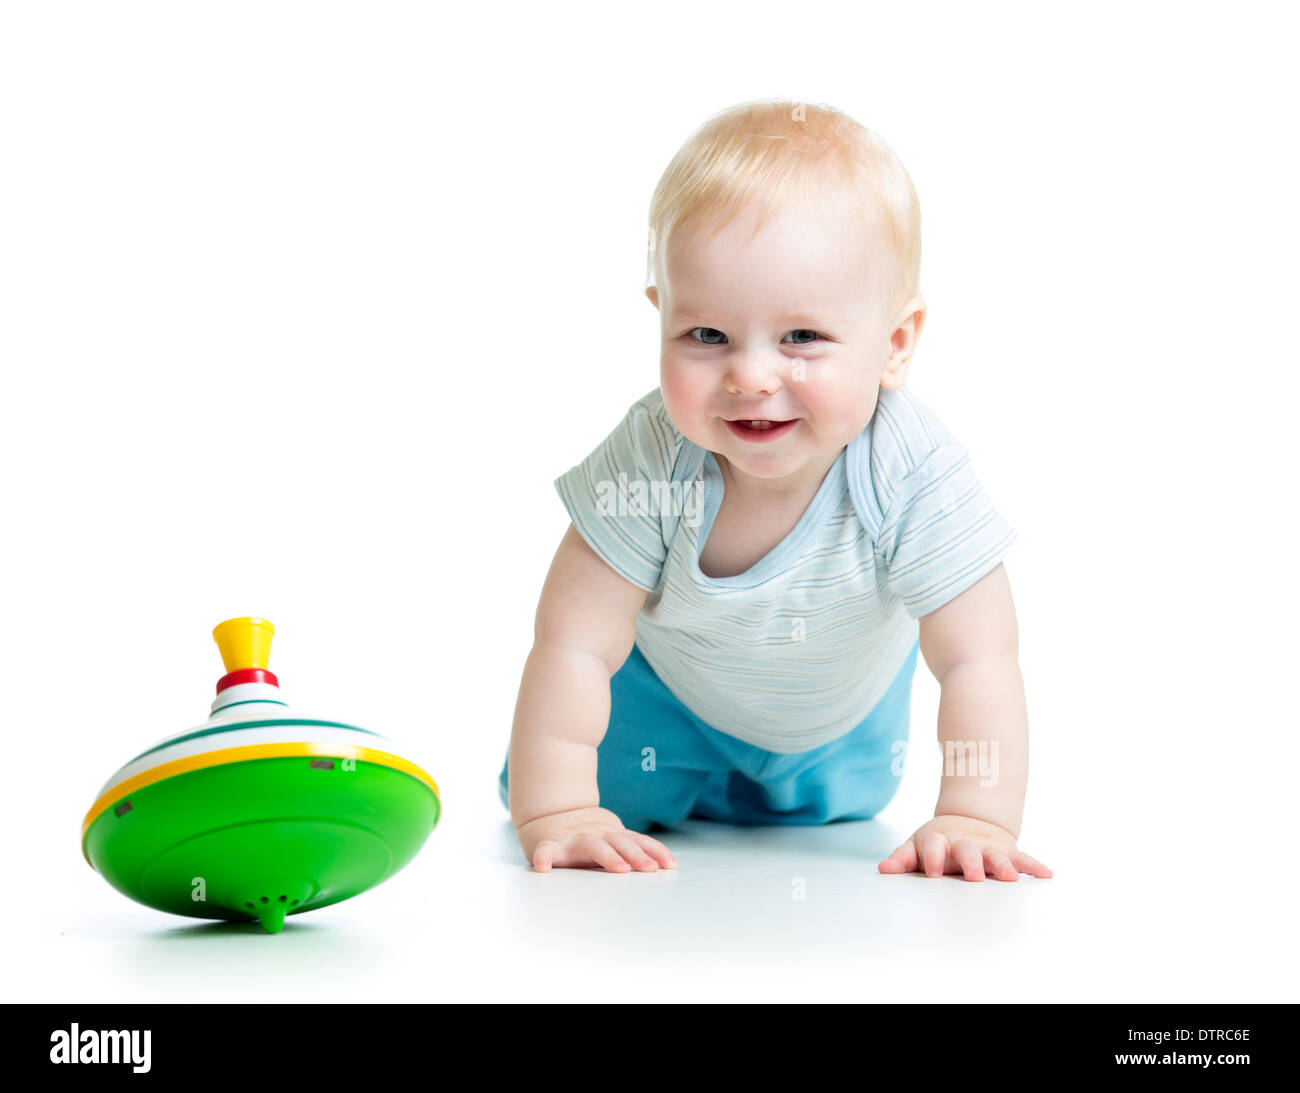 baby playing with toy whirligig - Stock Image